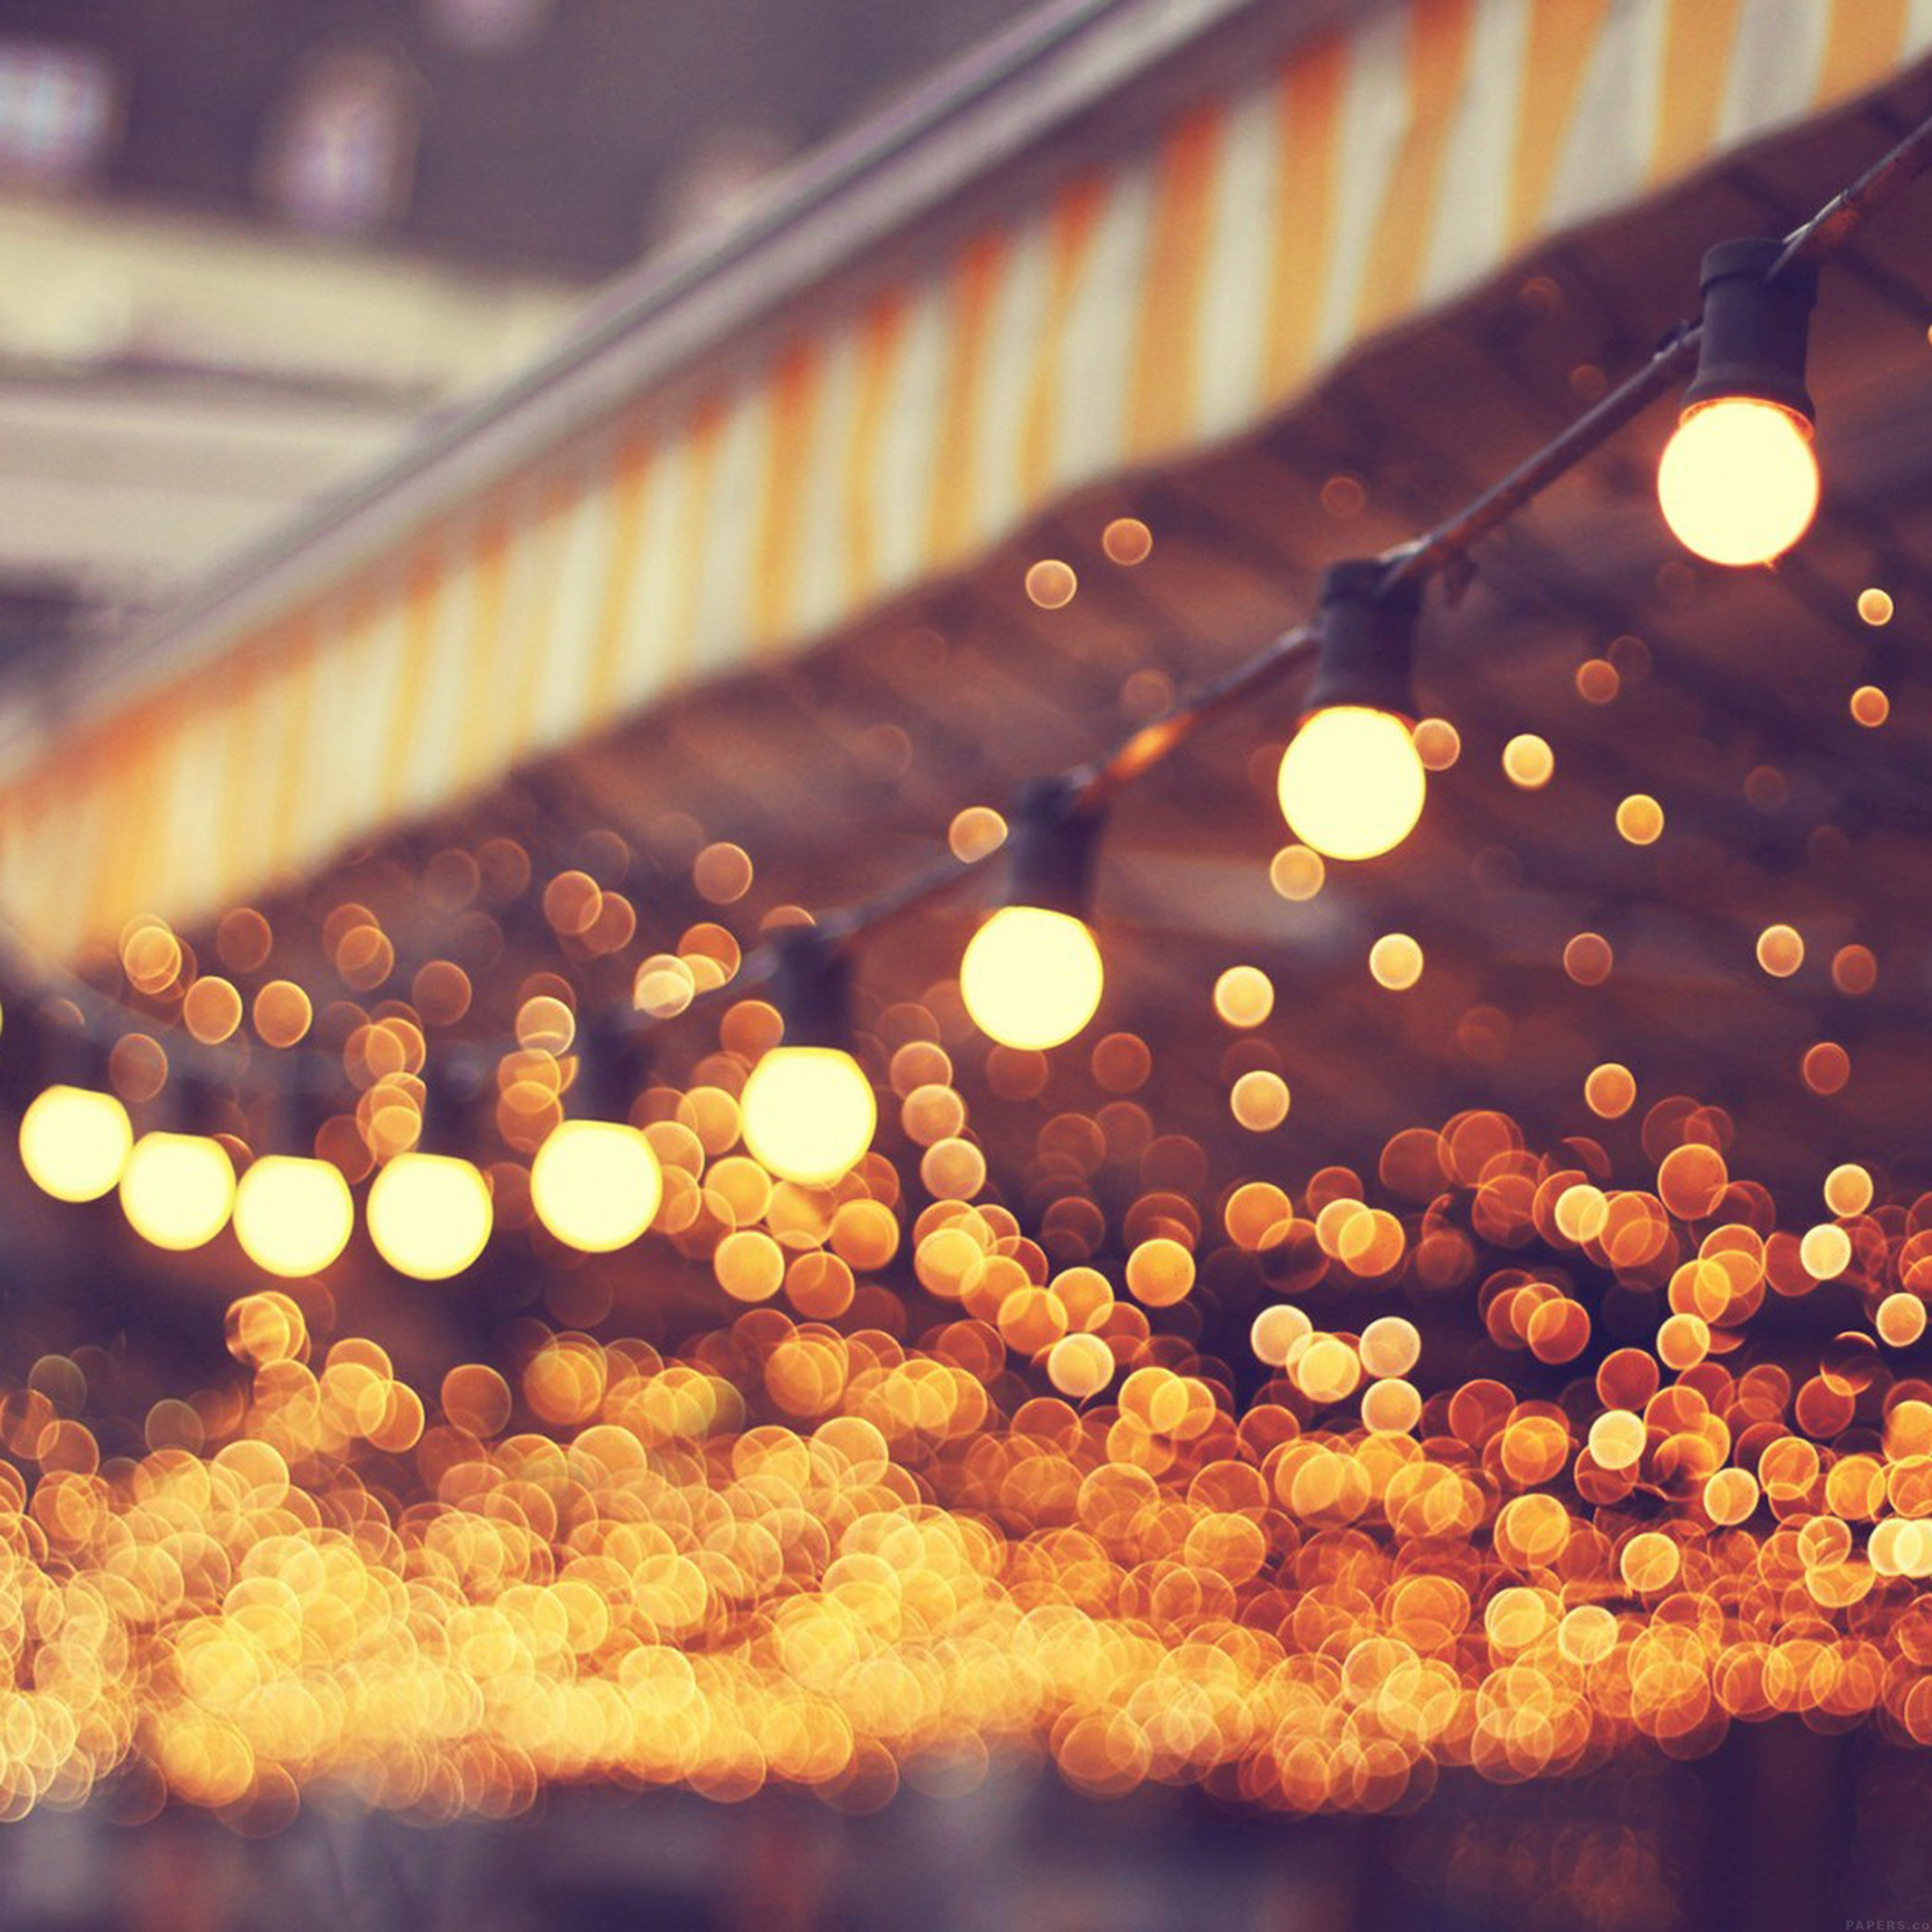 Fall Lights Iphone Wallpaper Bokeh Wallpapers For Iphone And Ipad